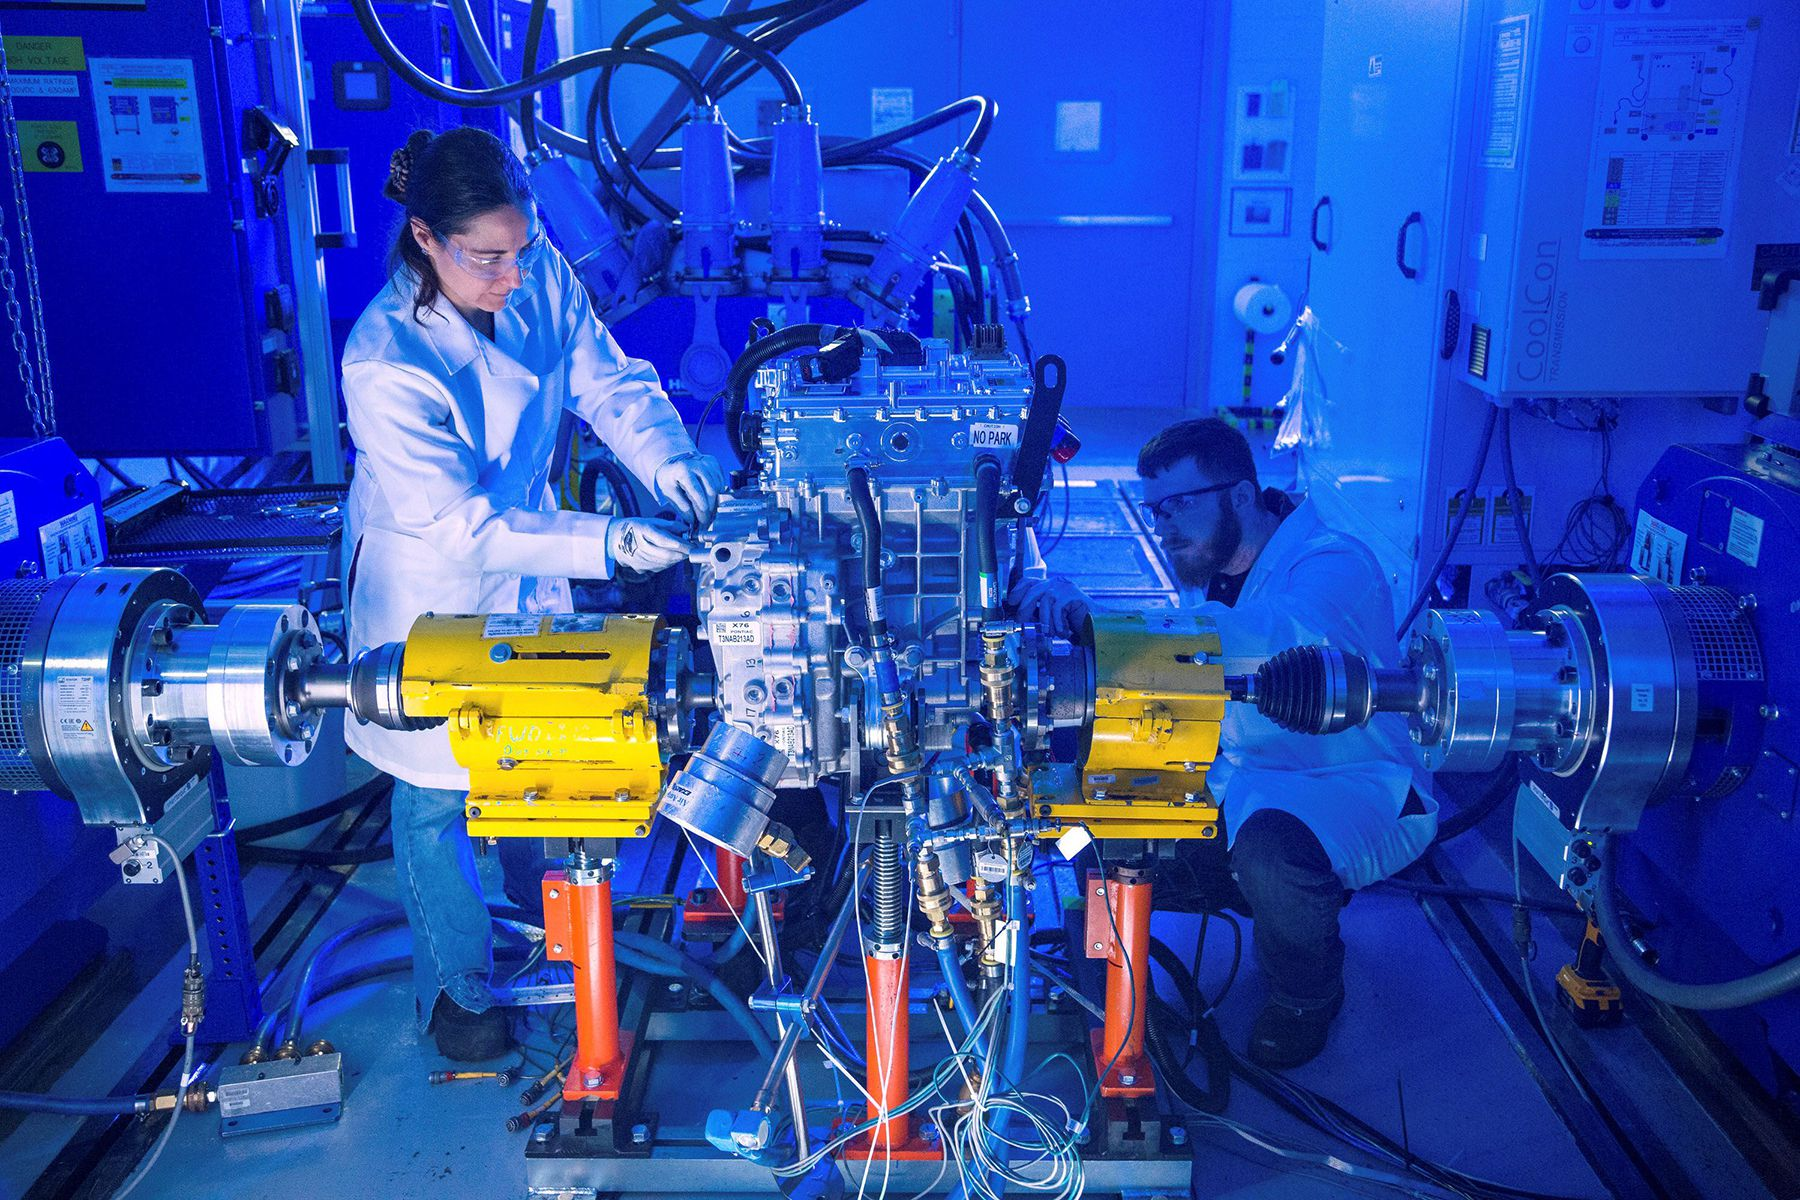 GM engineers test the 'Ultium Drive' unit in the dyno chamber at the General Motors Propulsion Systems Center in Pontiac, Michigan